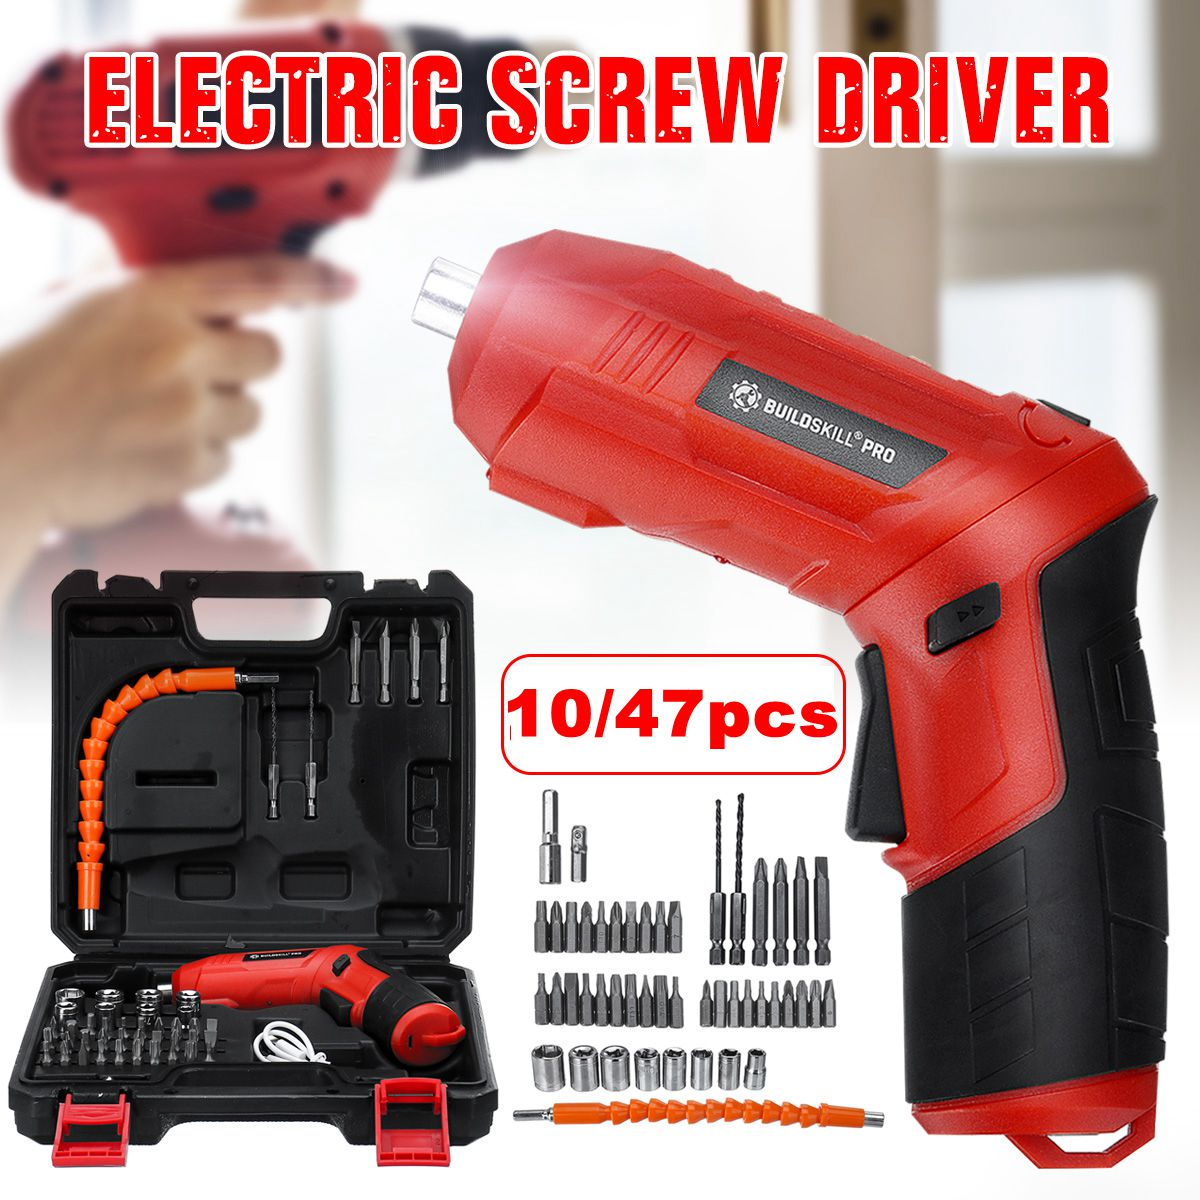 10/47pcs USB Electric Screwdriver Mini Electric Drill Set Screw Driver Rechargeable Li-ion Battery Cordless Power Screwdriver